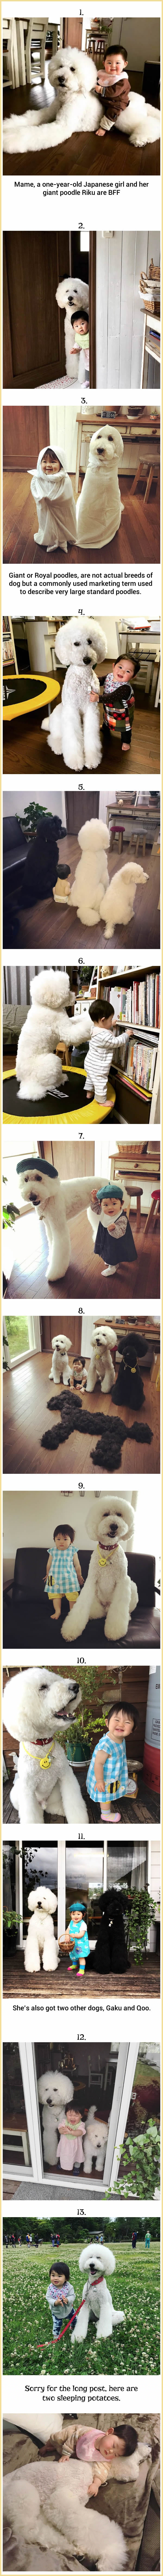 Cute Baby And Fluffy Giant Poodles Make The Most Perfect Squad